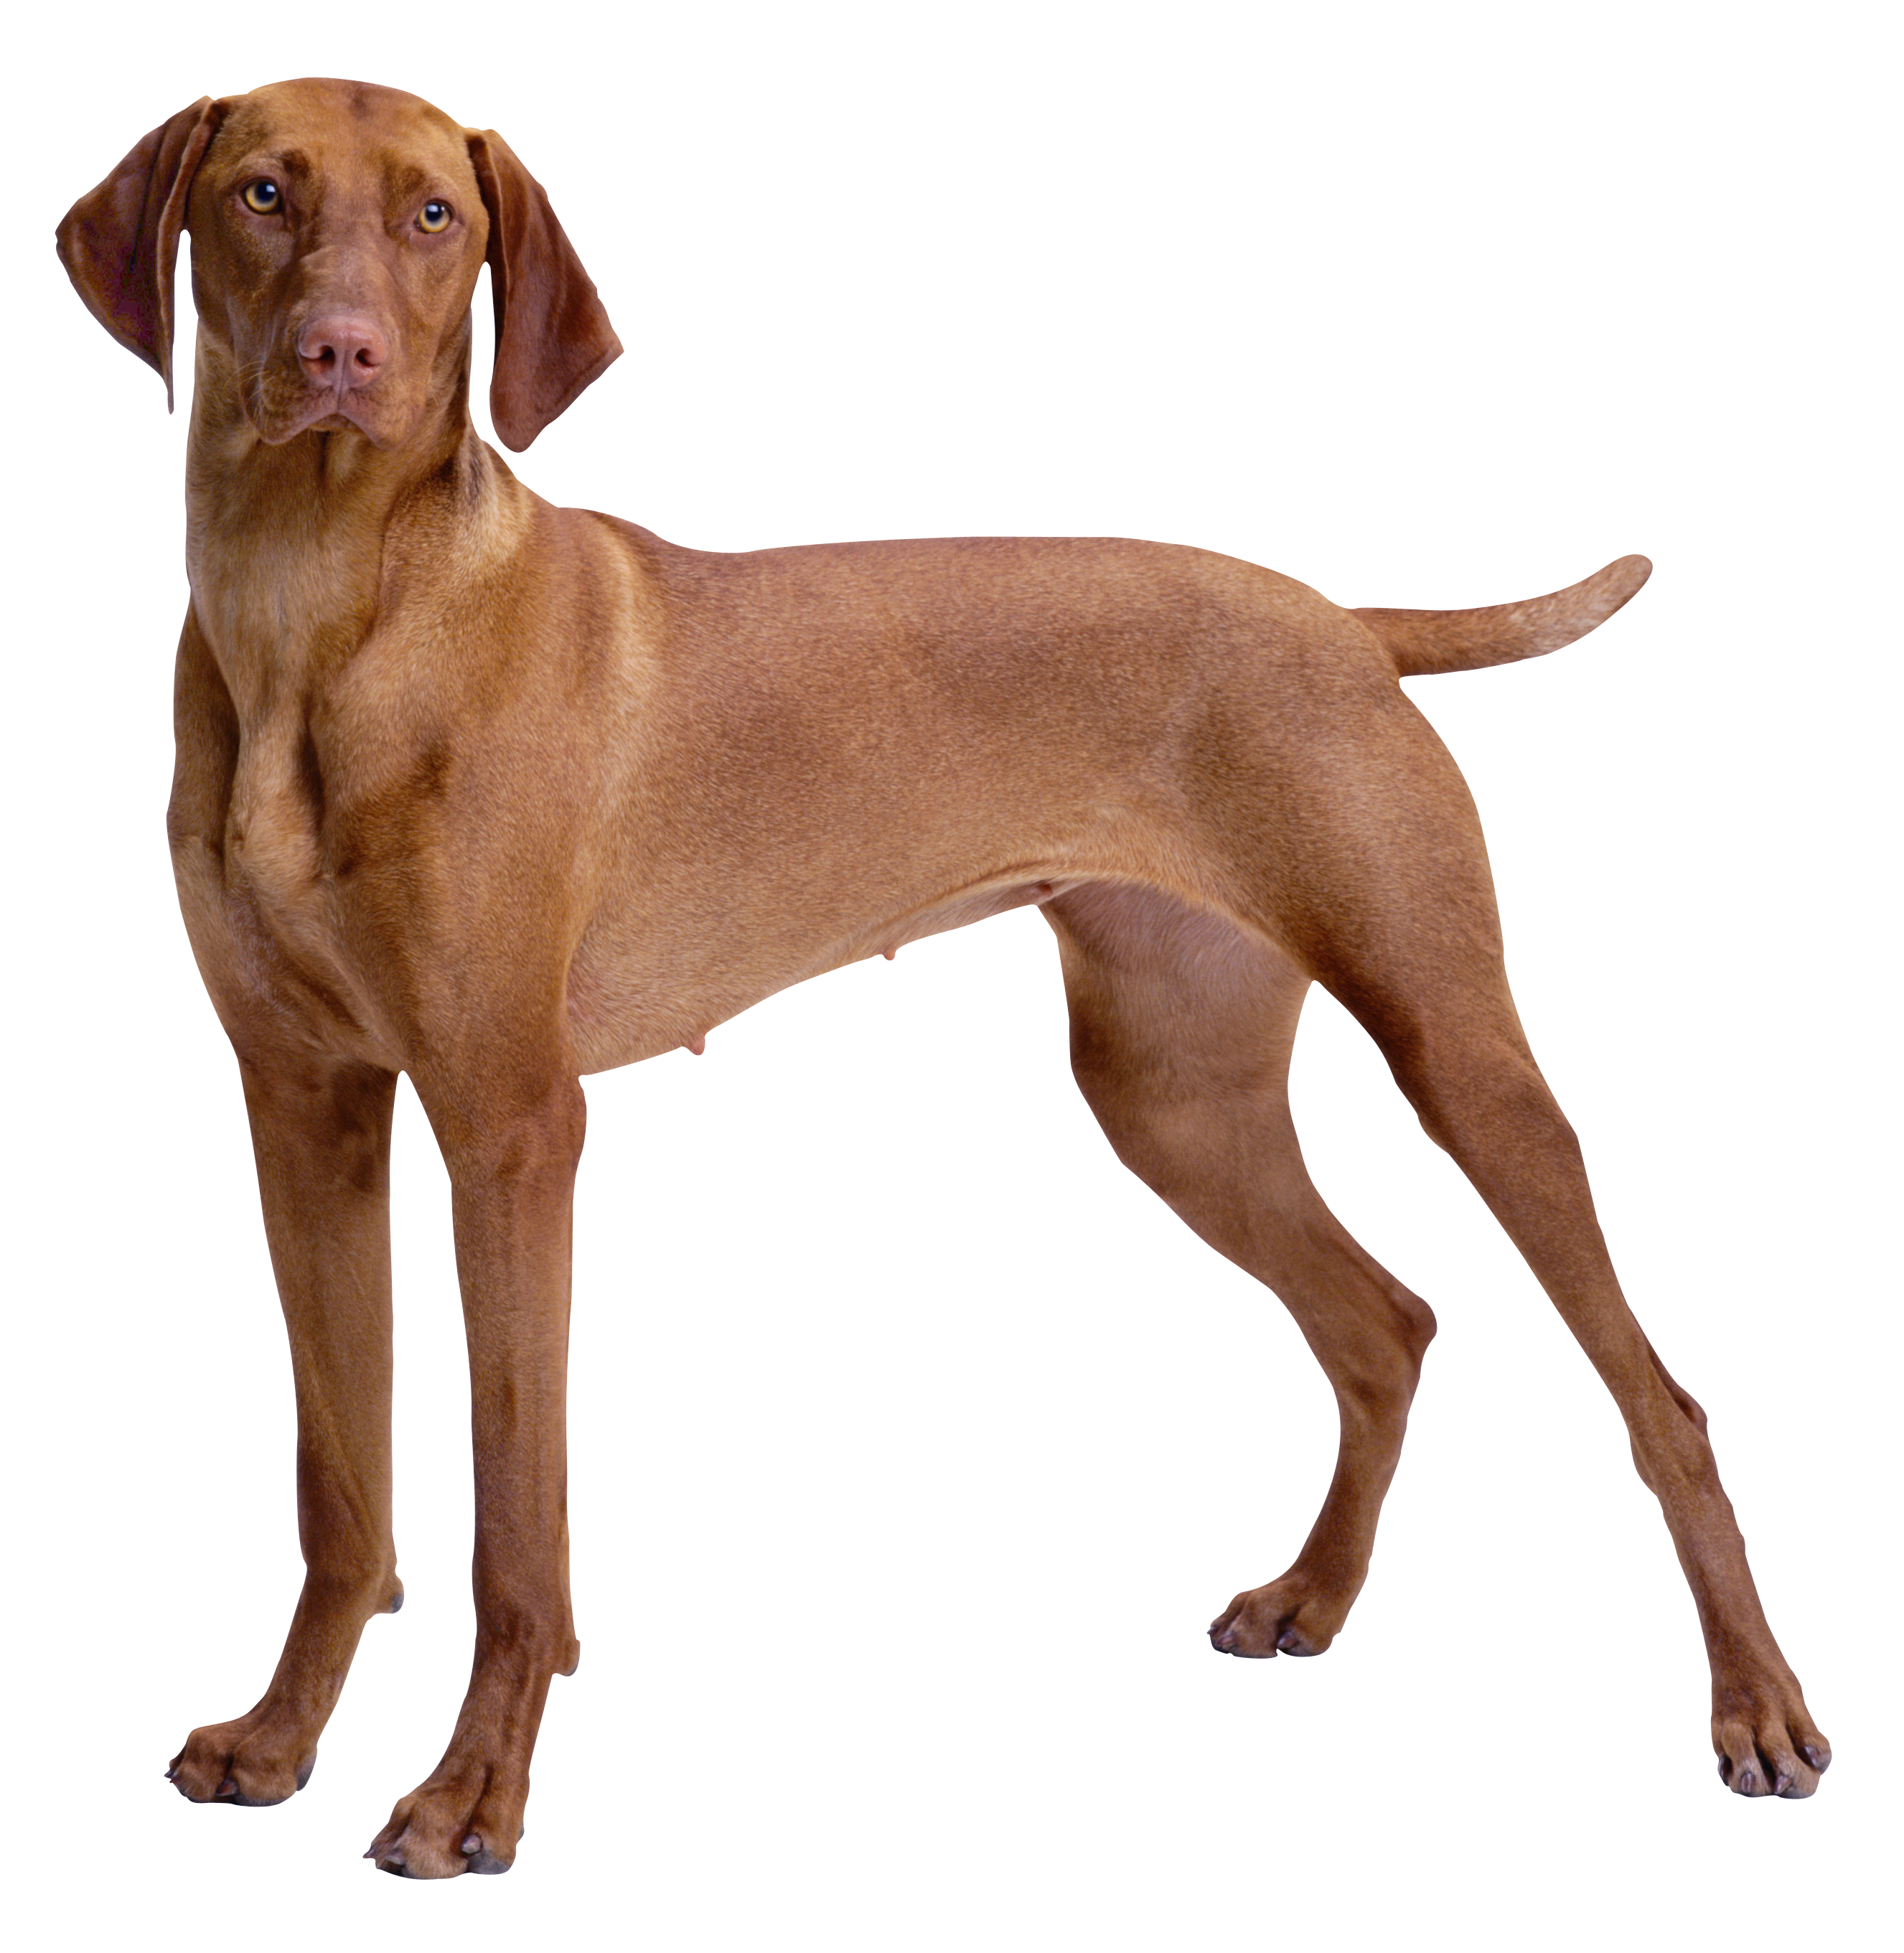 Dogs clipart tree. Brown dog png best